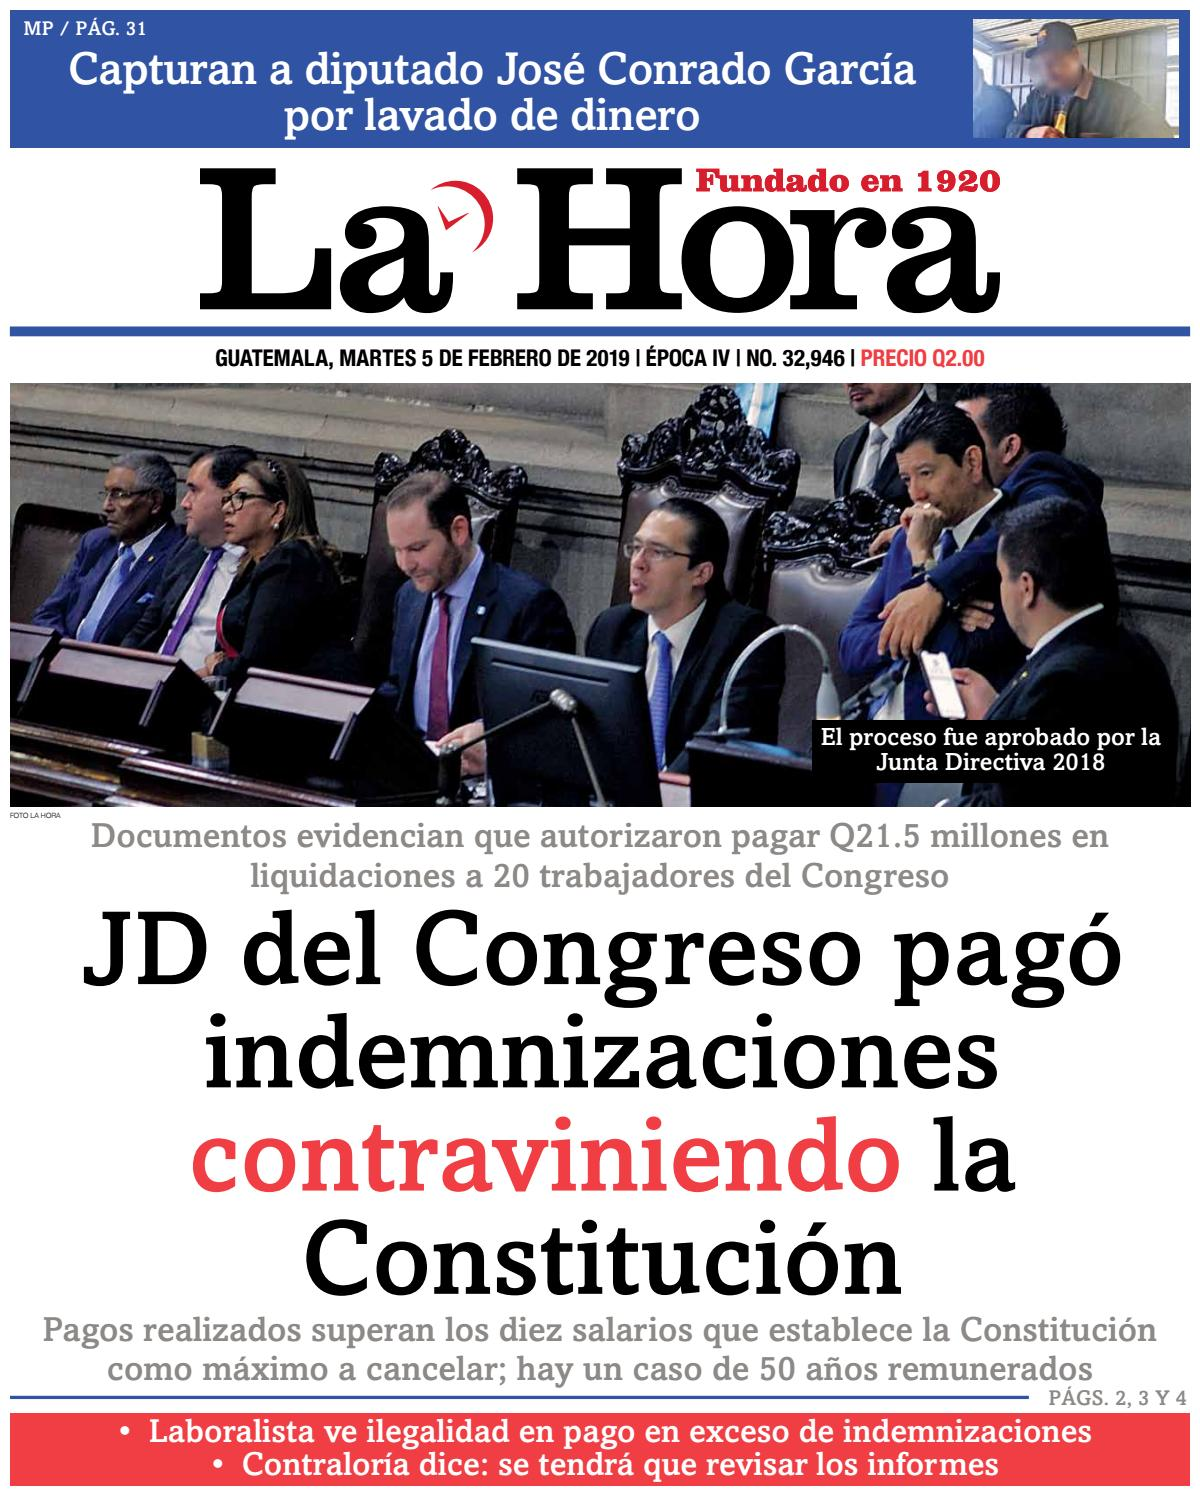 La Hora 05-02-2019 by La Hora - issuu cd86ab5735b